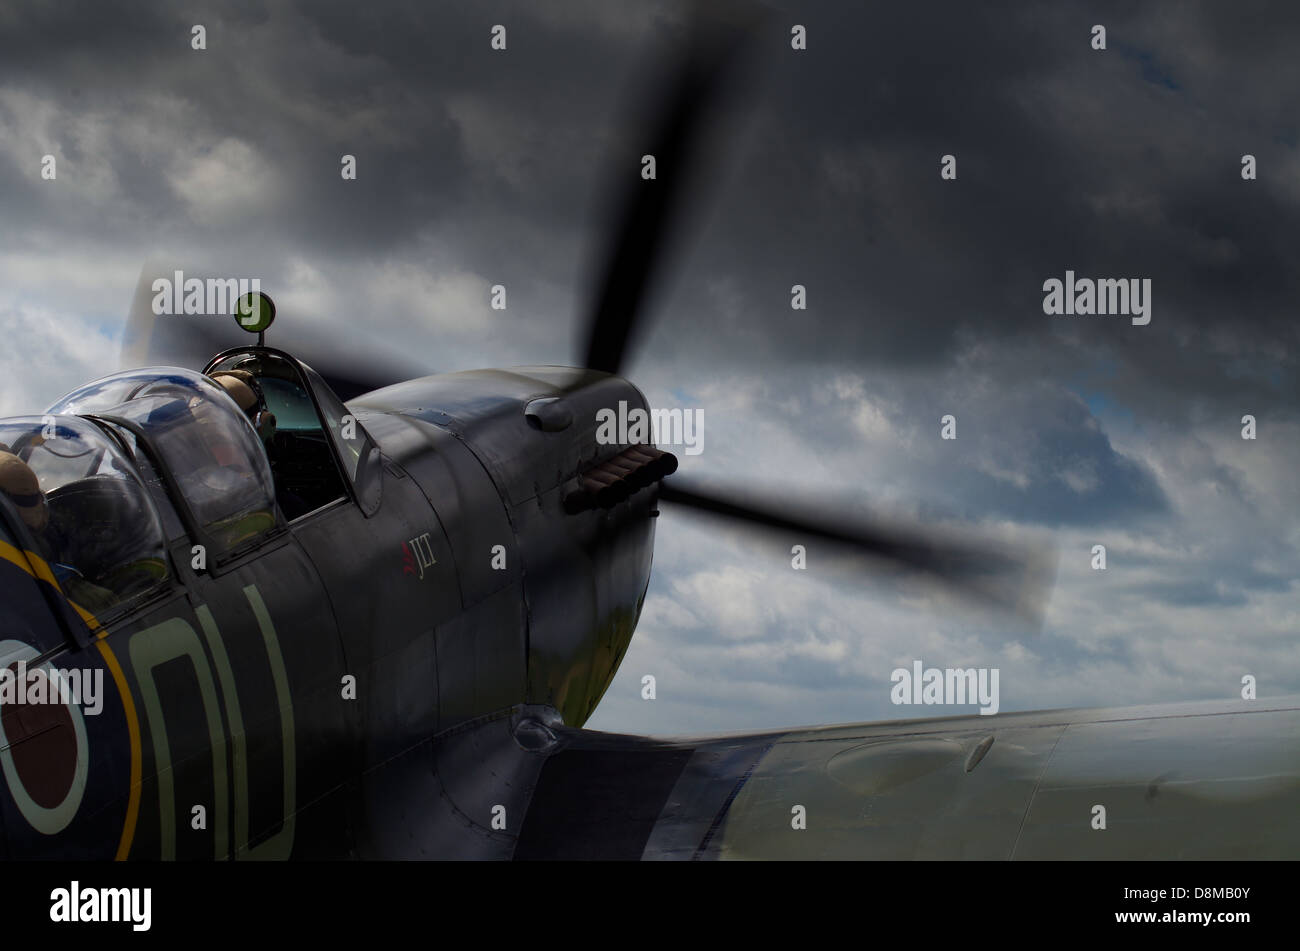 Twin seat Spitfire starts up and is about to take off - Stock Image